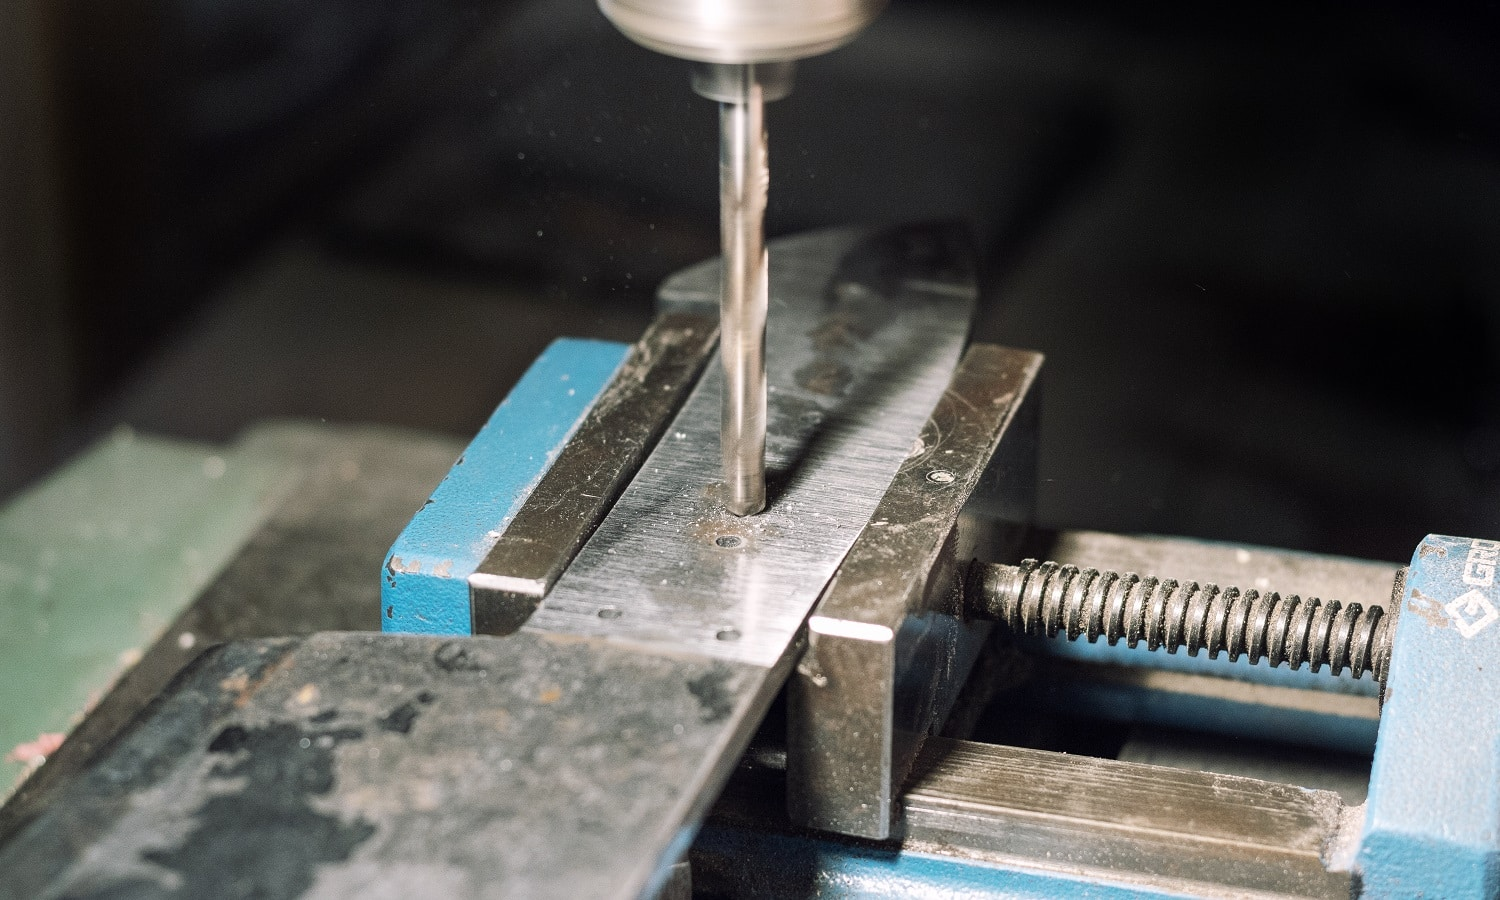 Drilling holes in a metal knife handle